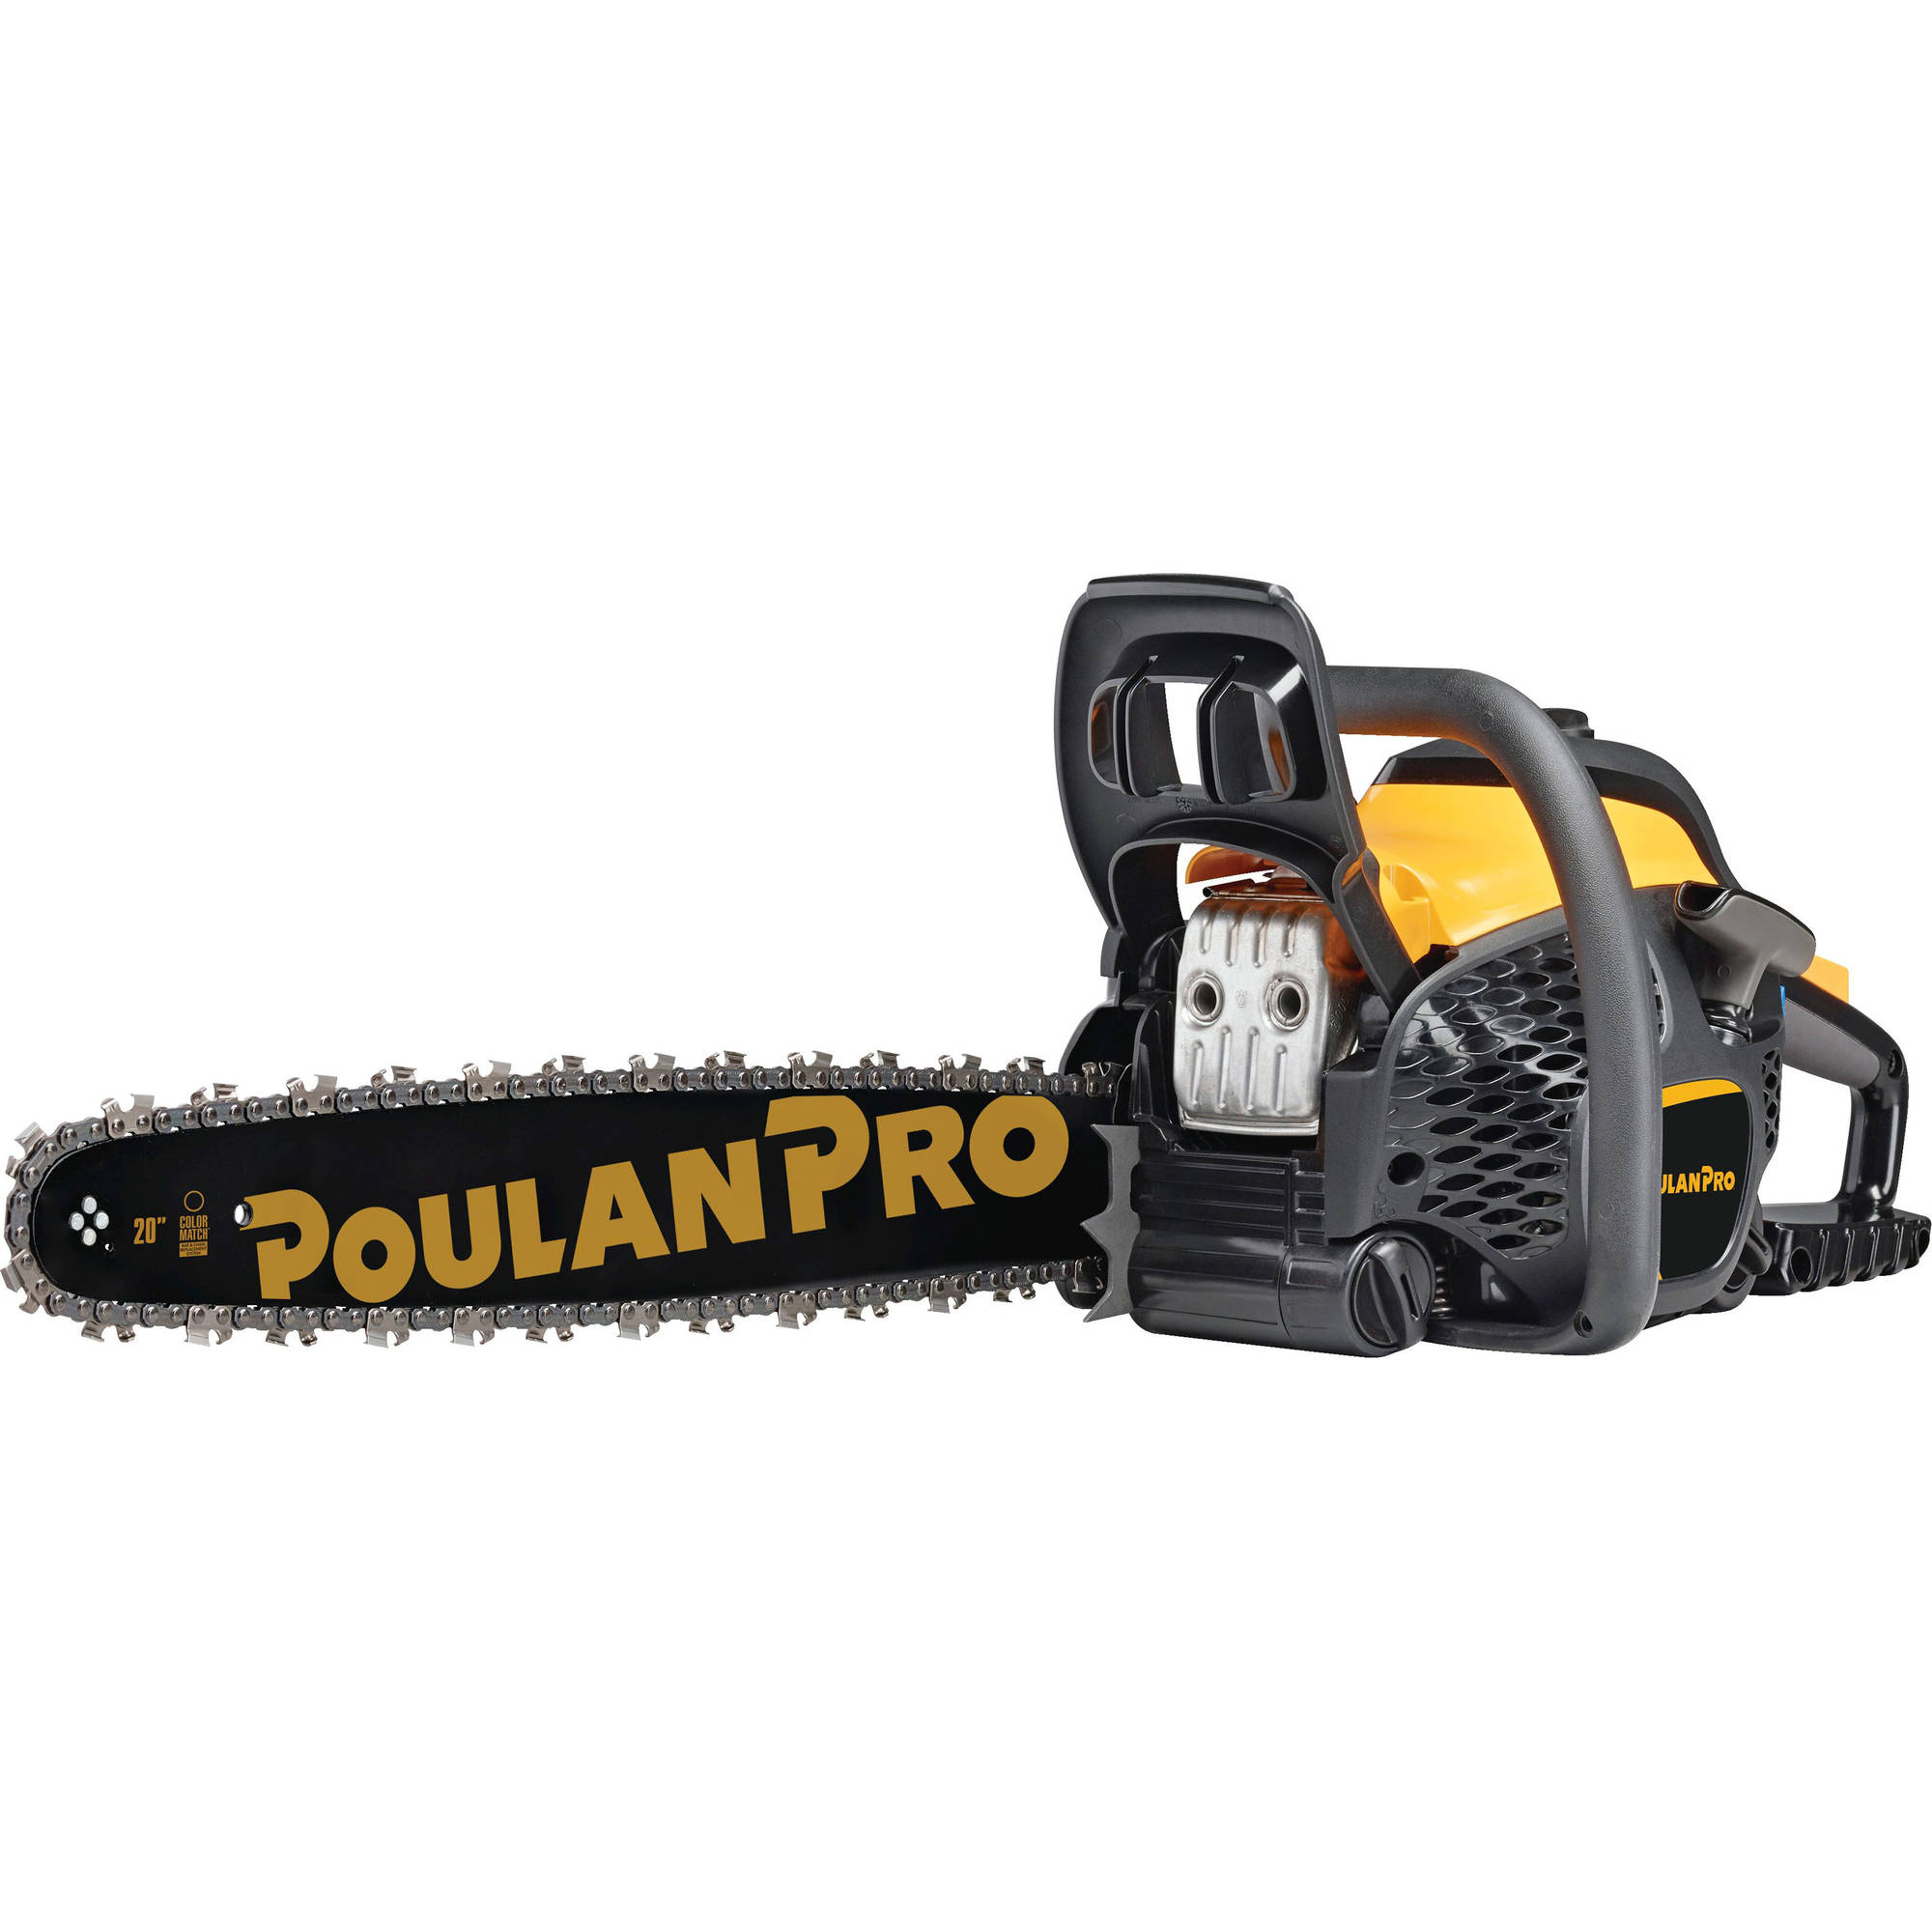 Poulan Pro 20-inch 50cc Two-Cycle Gas Engine Chainsaw by Husqvarna